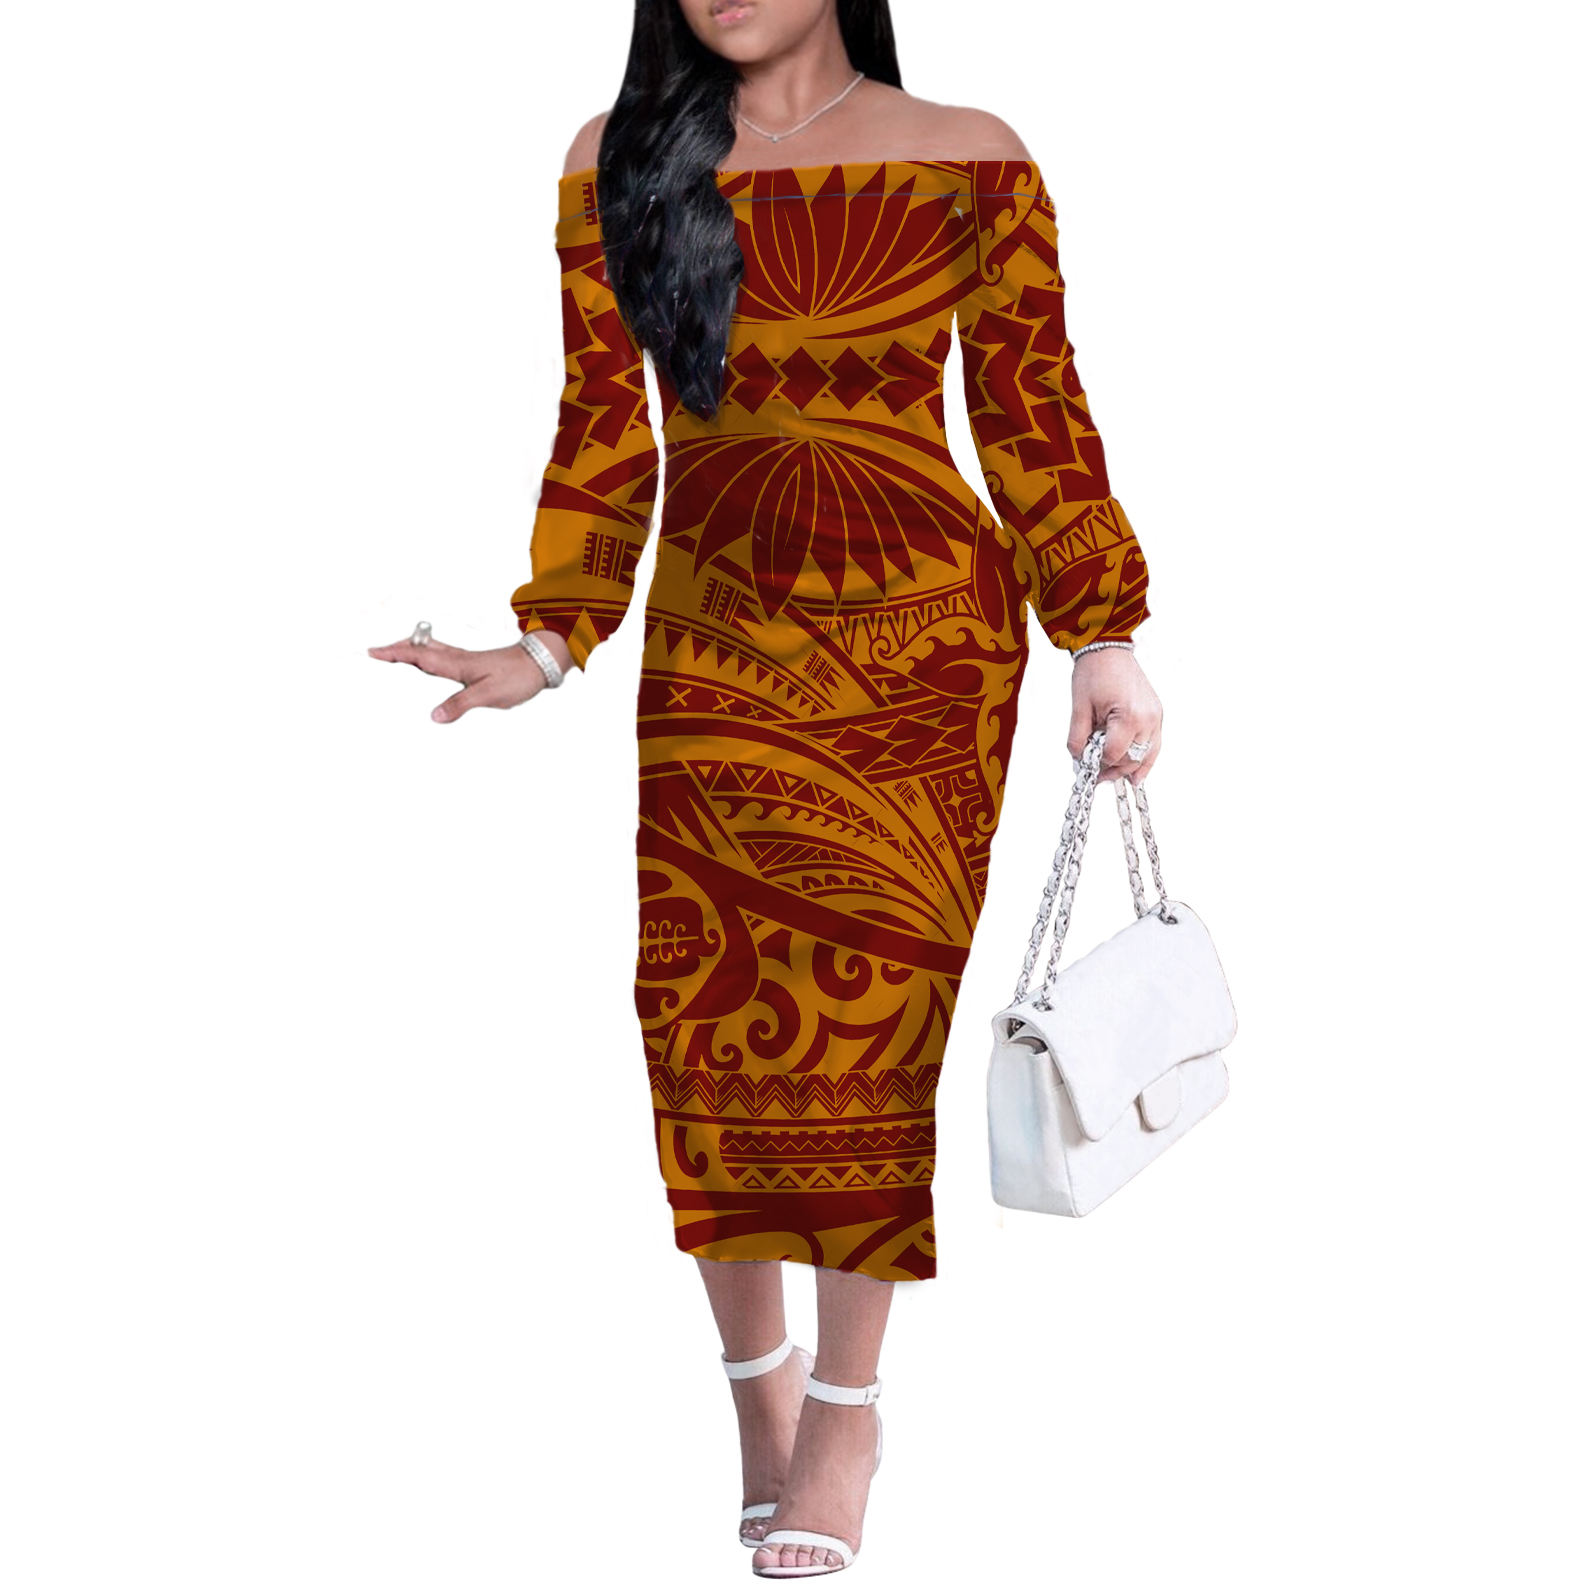 2021 Hot Sale 4XL women's wrap dress Printed Party Pencil Dress Polynesia Tribal Girls' long sleeve one shoulder dress